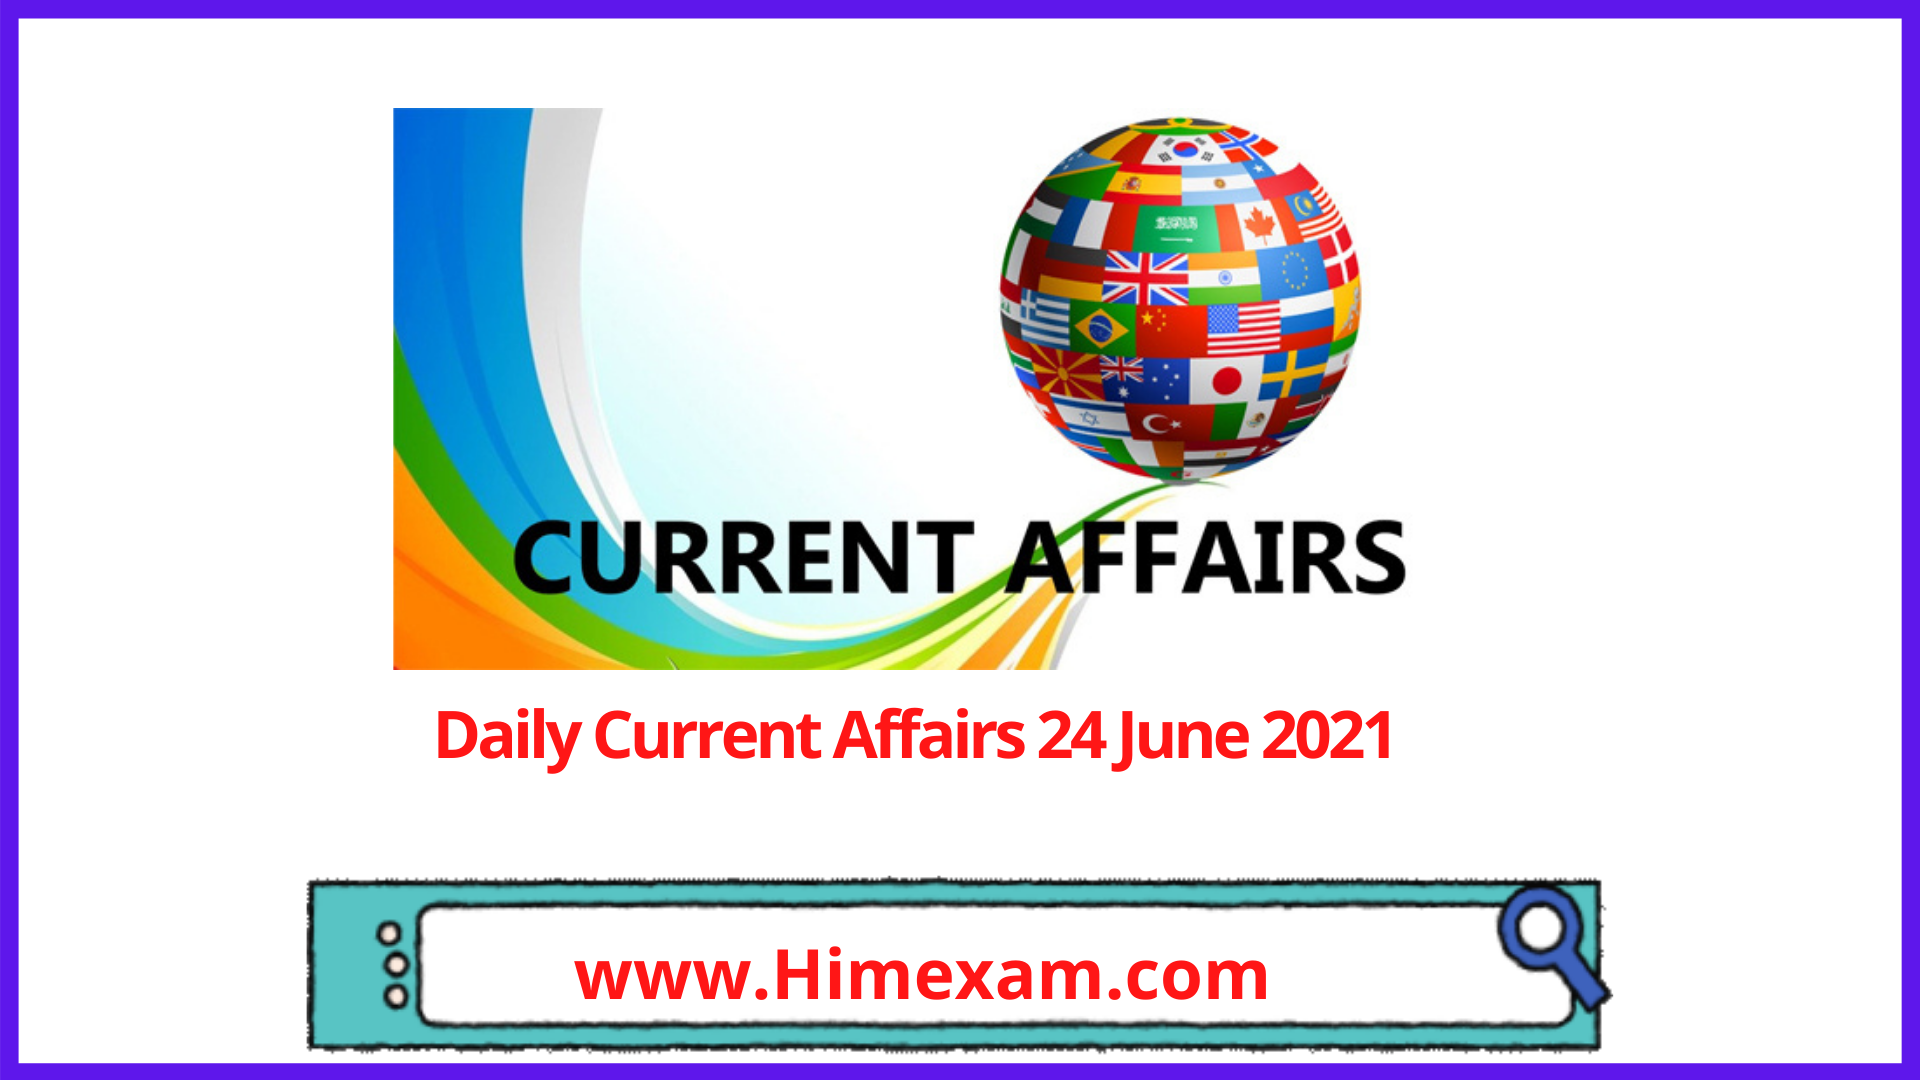 Daily Current Affairs 24 June 2021 In English